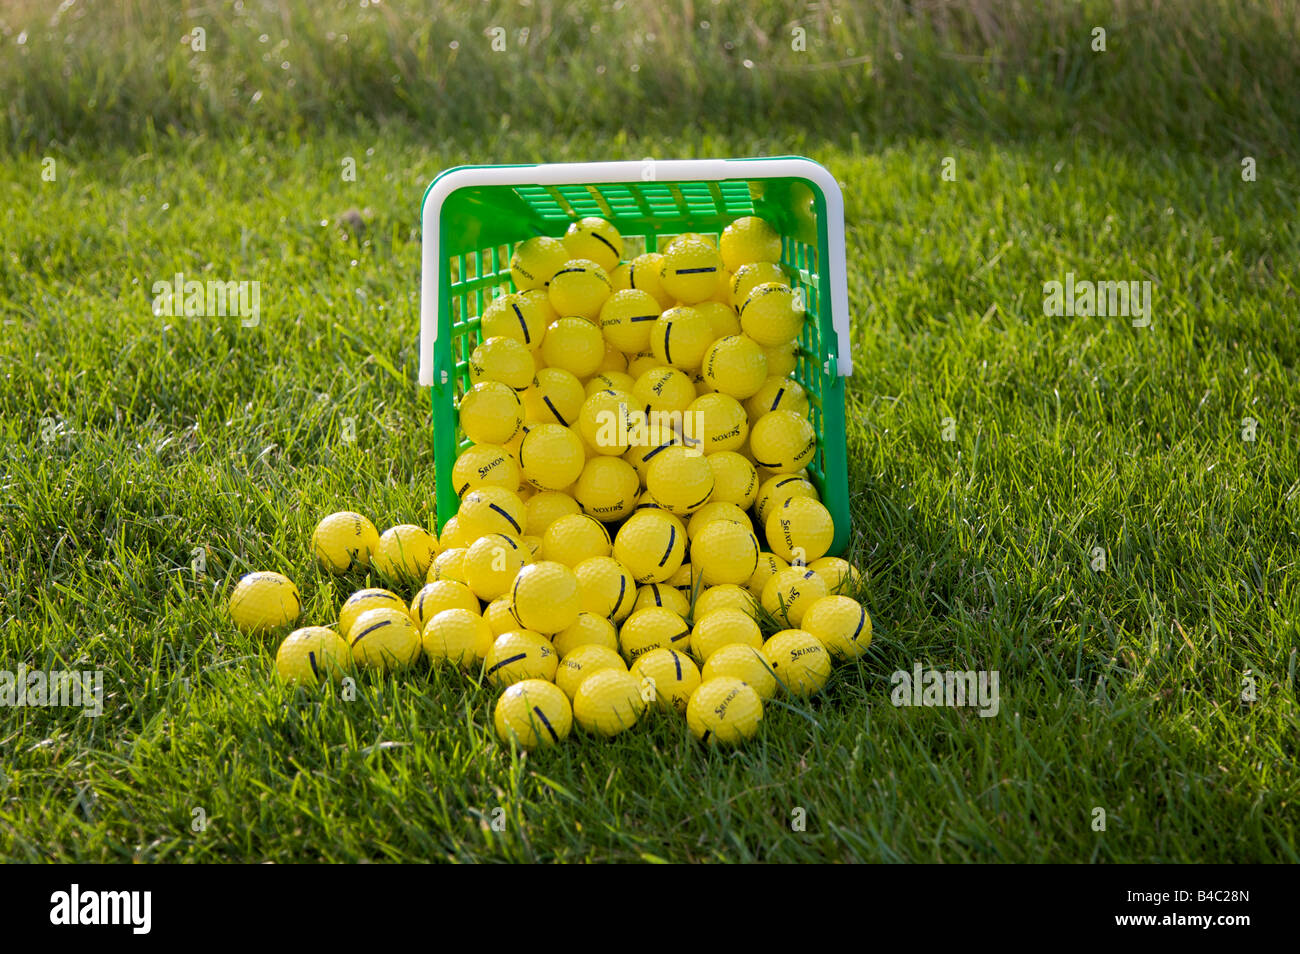 Basket of spilled golf balls ready for practice - Stock Image